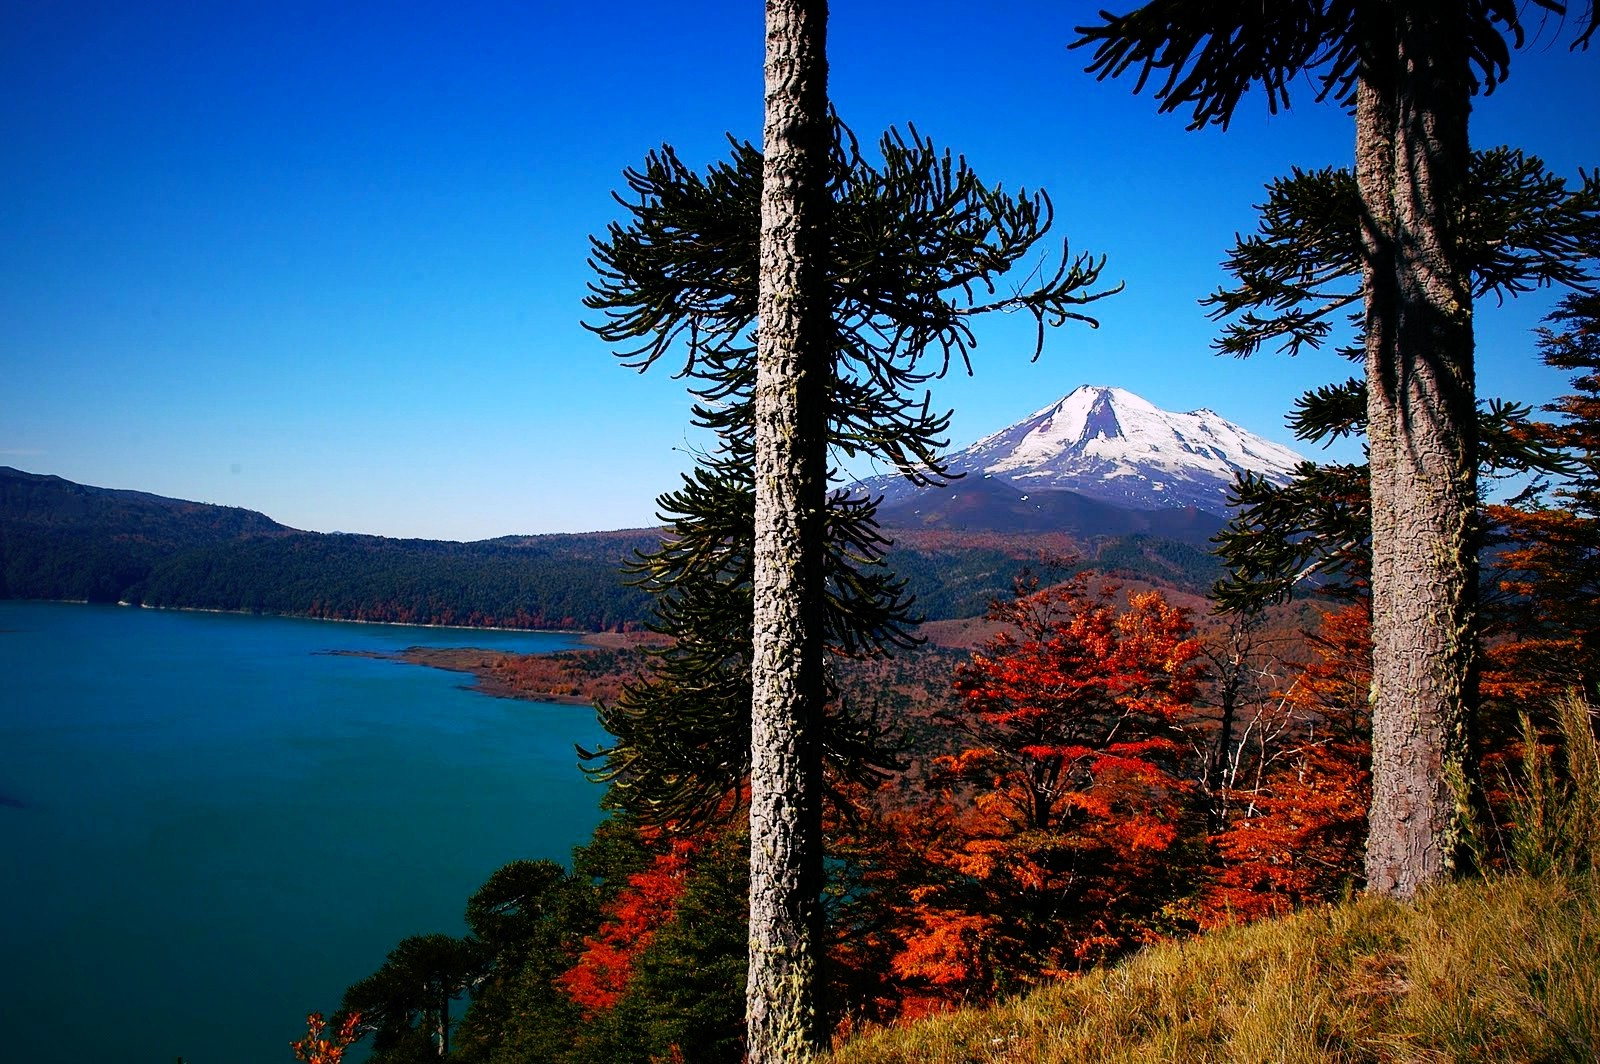 Fall Trees Desktop Wallpaper Volcano Chile Forest Lake Fall Snowy Peak Trees